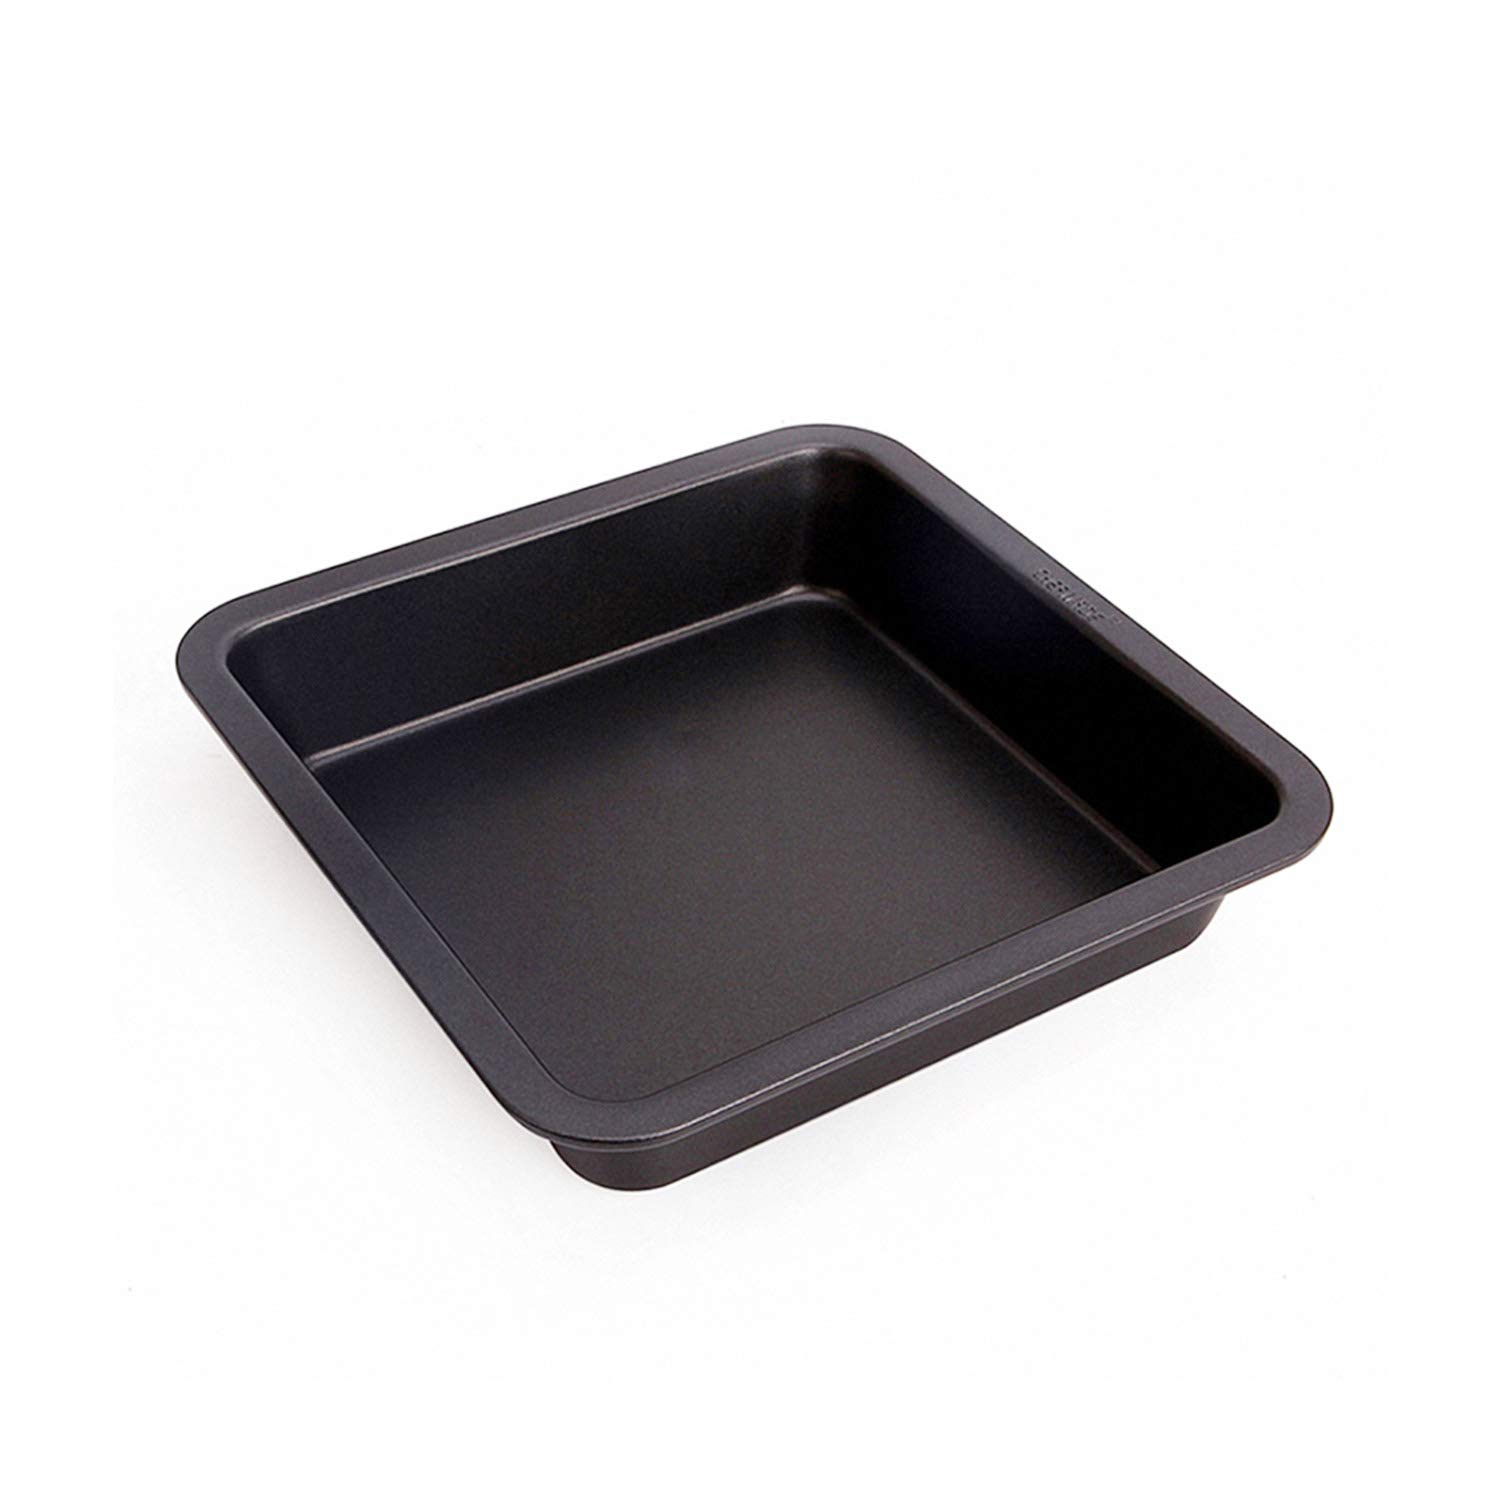 CHEFMADE Square Cake Pan, 8-Inch Bakeware Non-Stick Carbon Steel Pan Deep Dish Oven Baking Mold Baking Tray Ovenware for Cakes, Bread, Pizza, Cookies FDA Approved